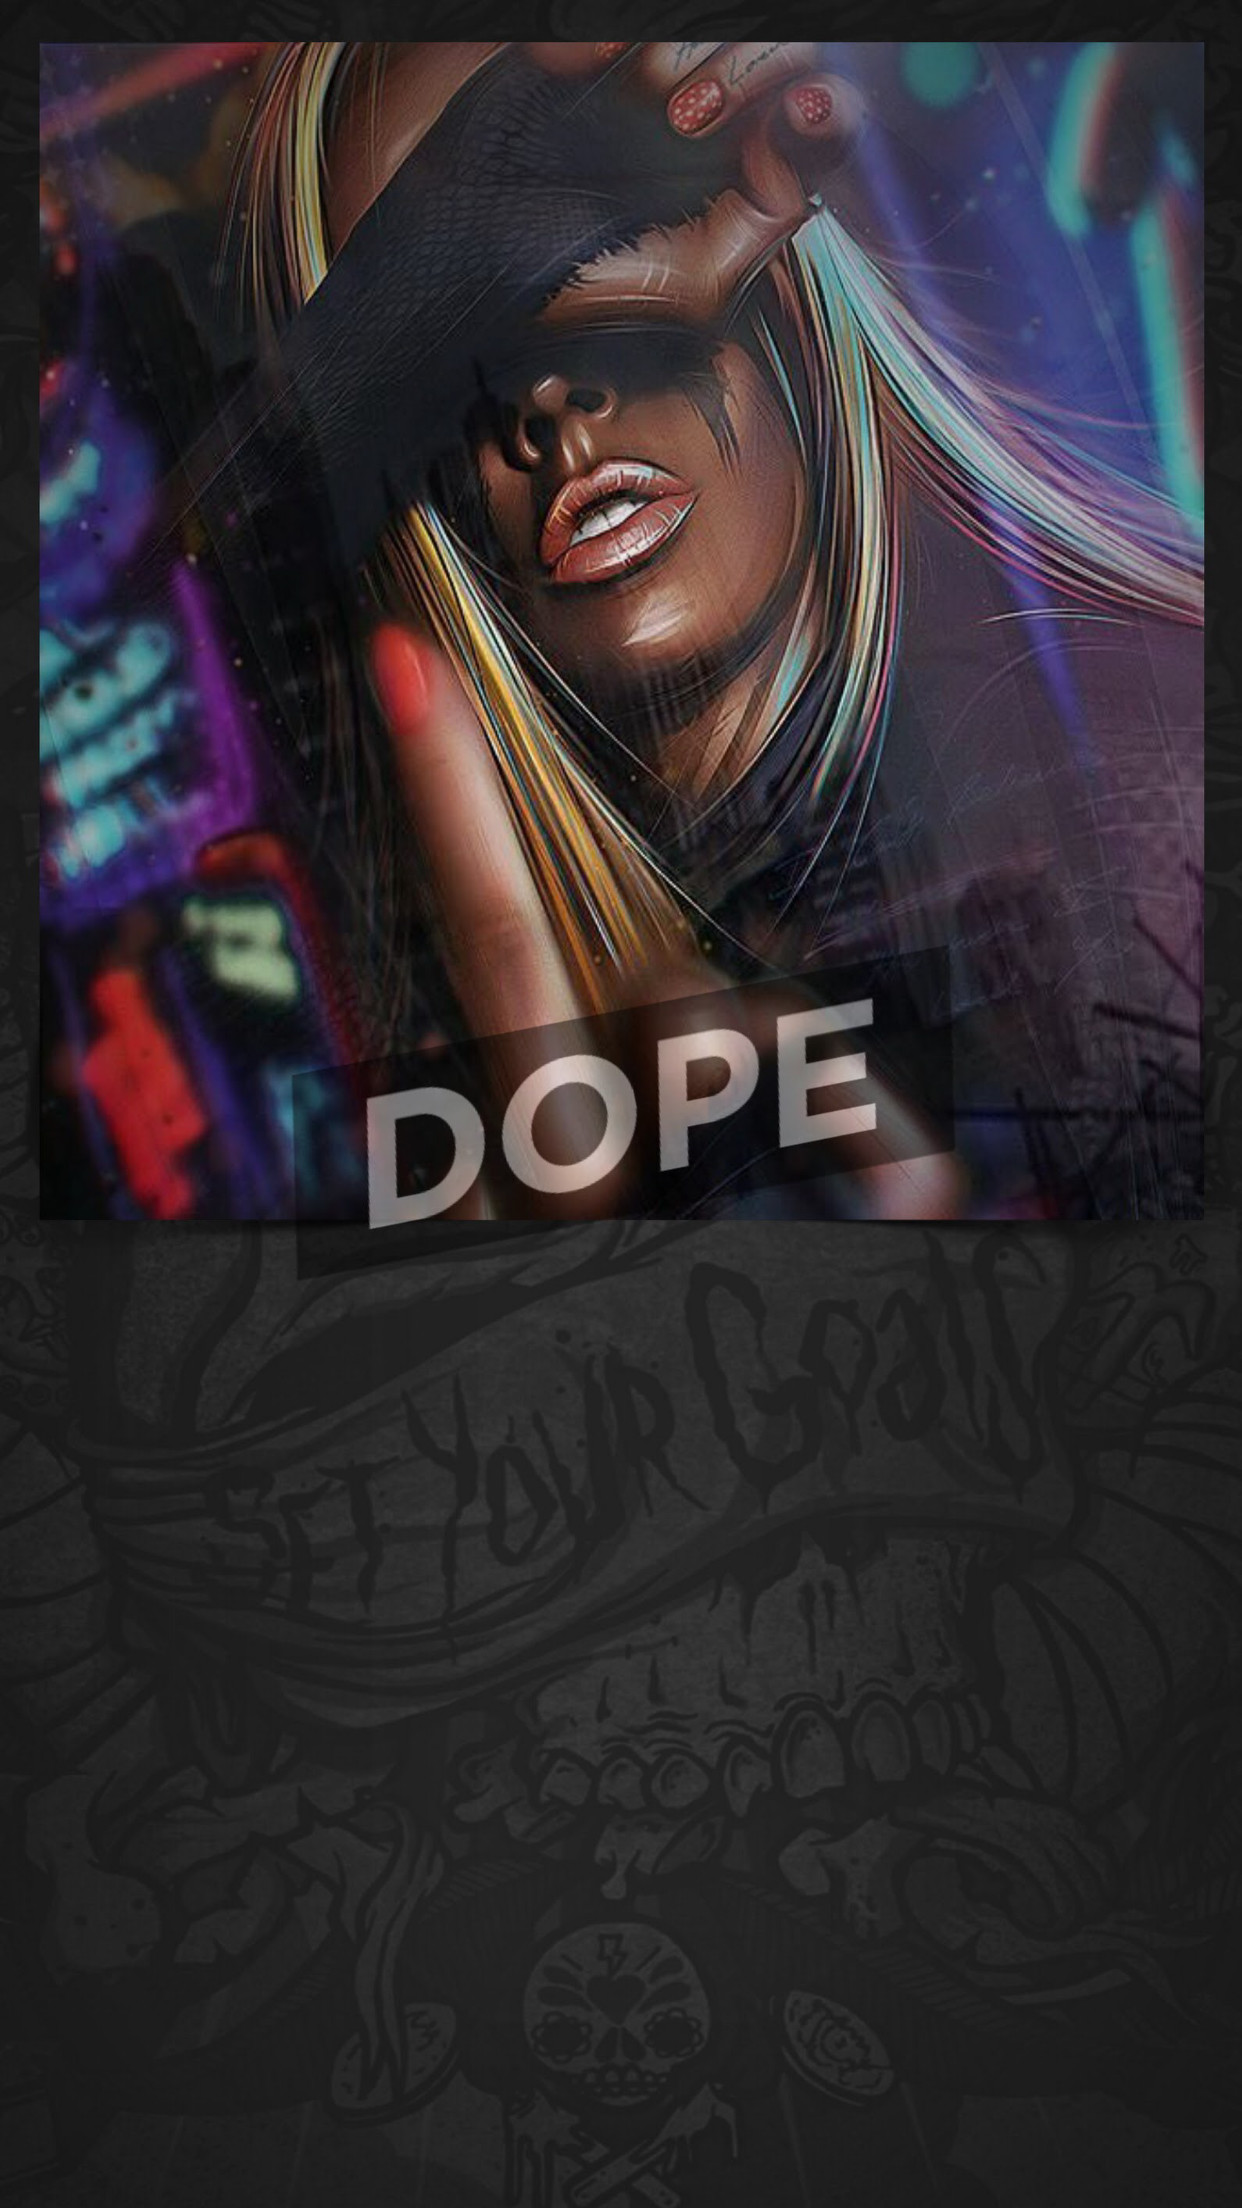 Dope Wallpapers For Iphone 83 Images